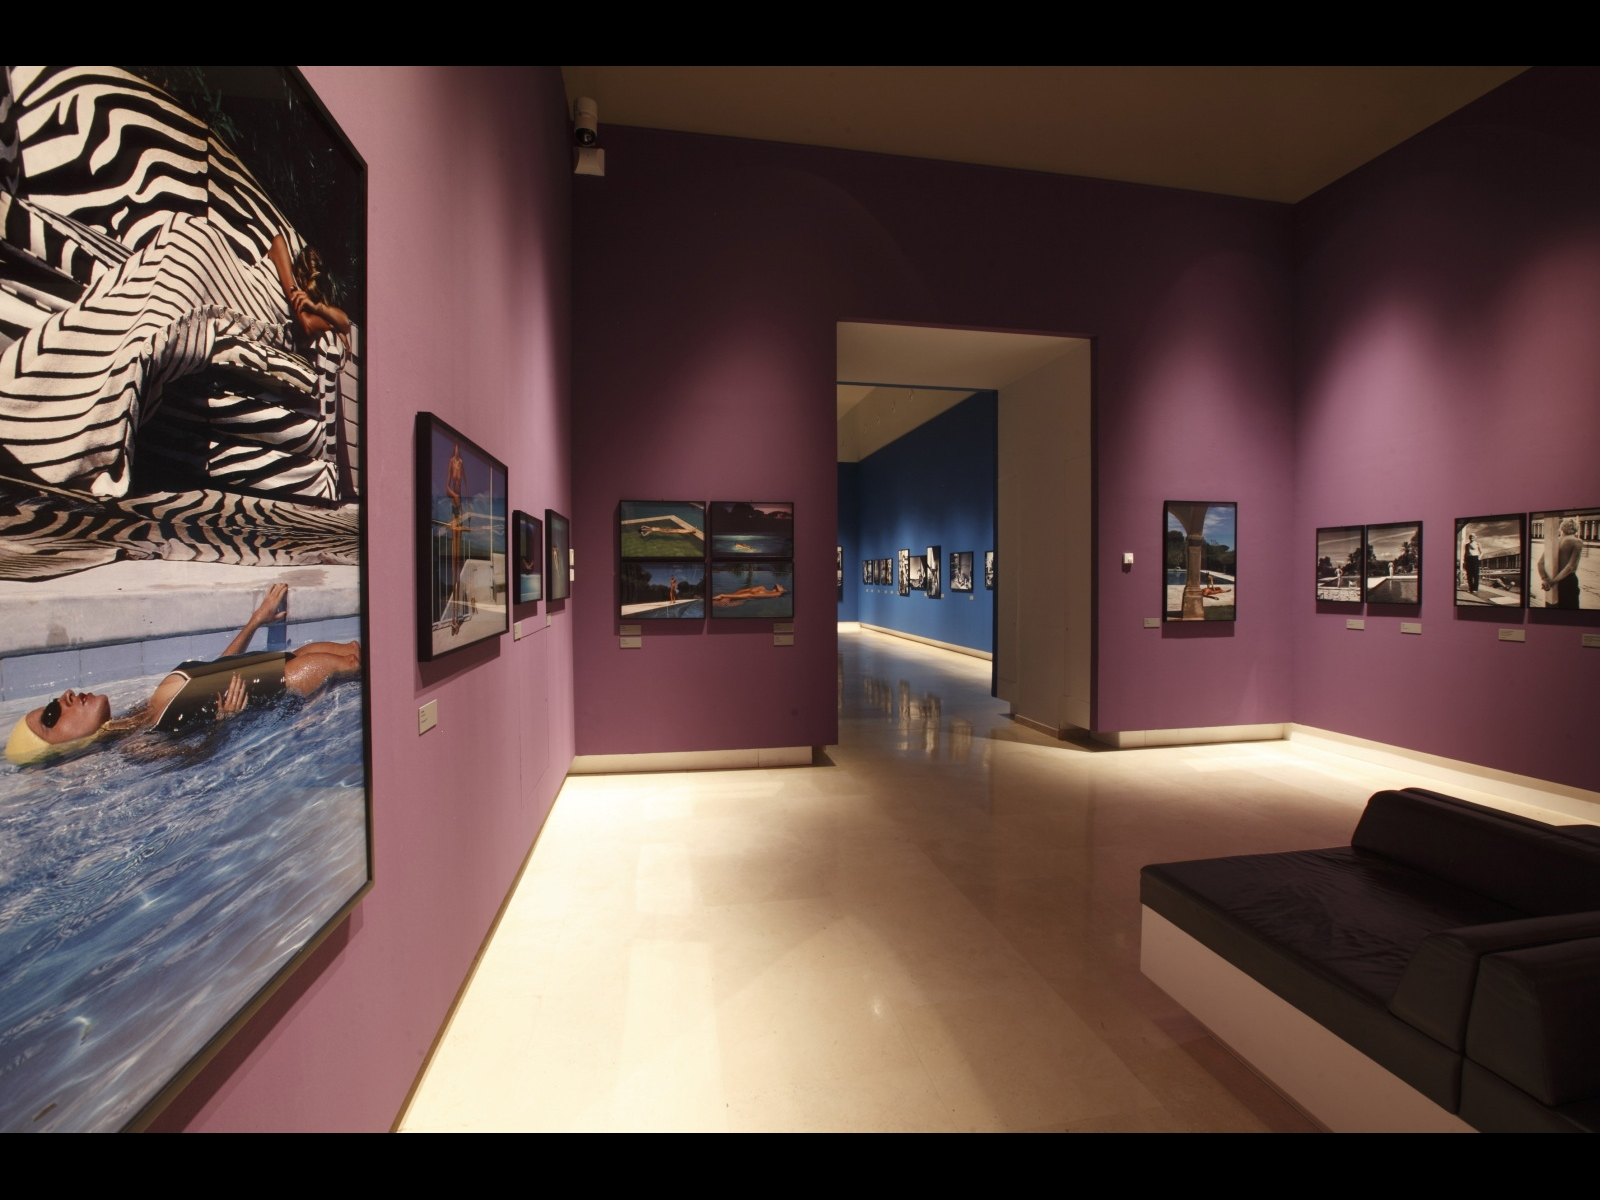 The exhibition design